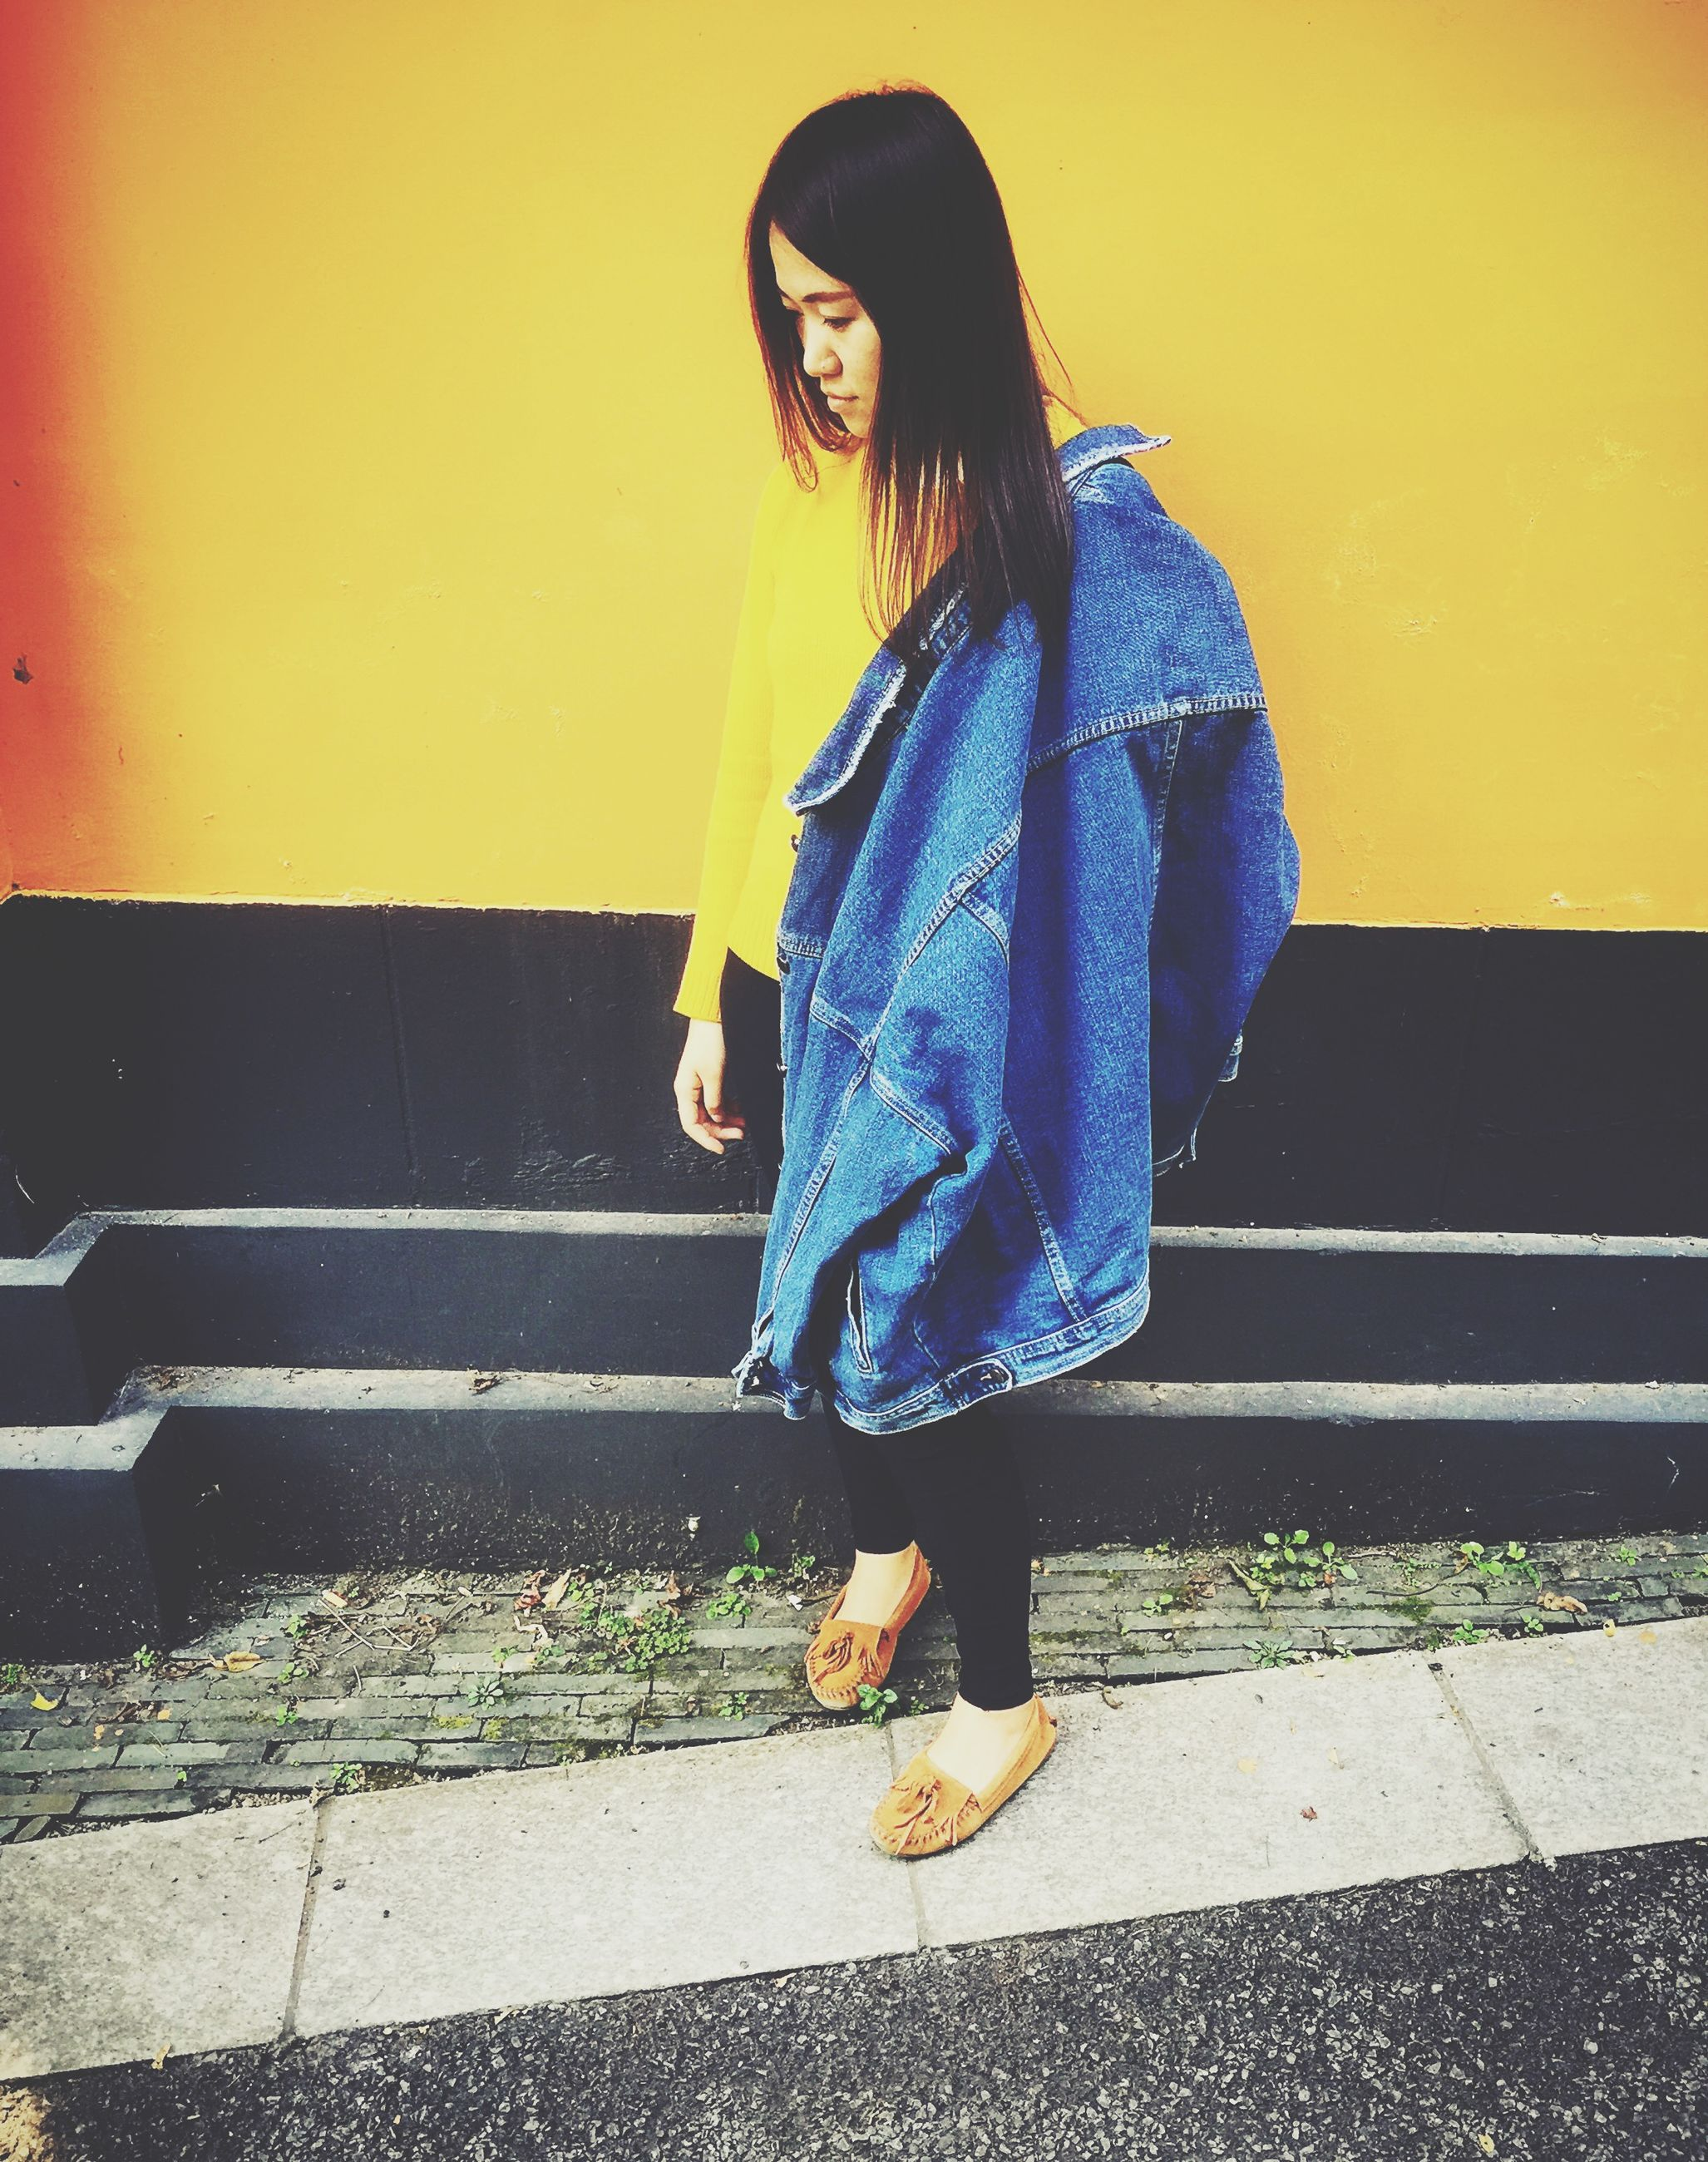 casual clothing, lifestyles, standing, young adult, person, full length, leisure activity, young women, front view, three quarter length, wall - building feature, side view, jacket, fashionable, long hair, looking away, yellow, holding